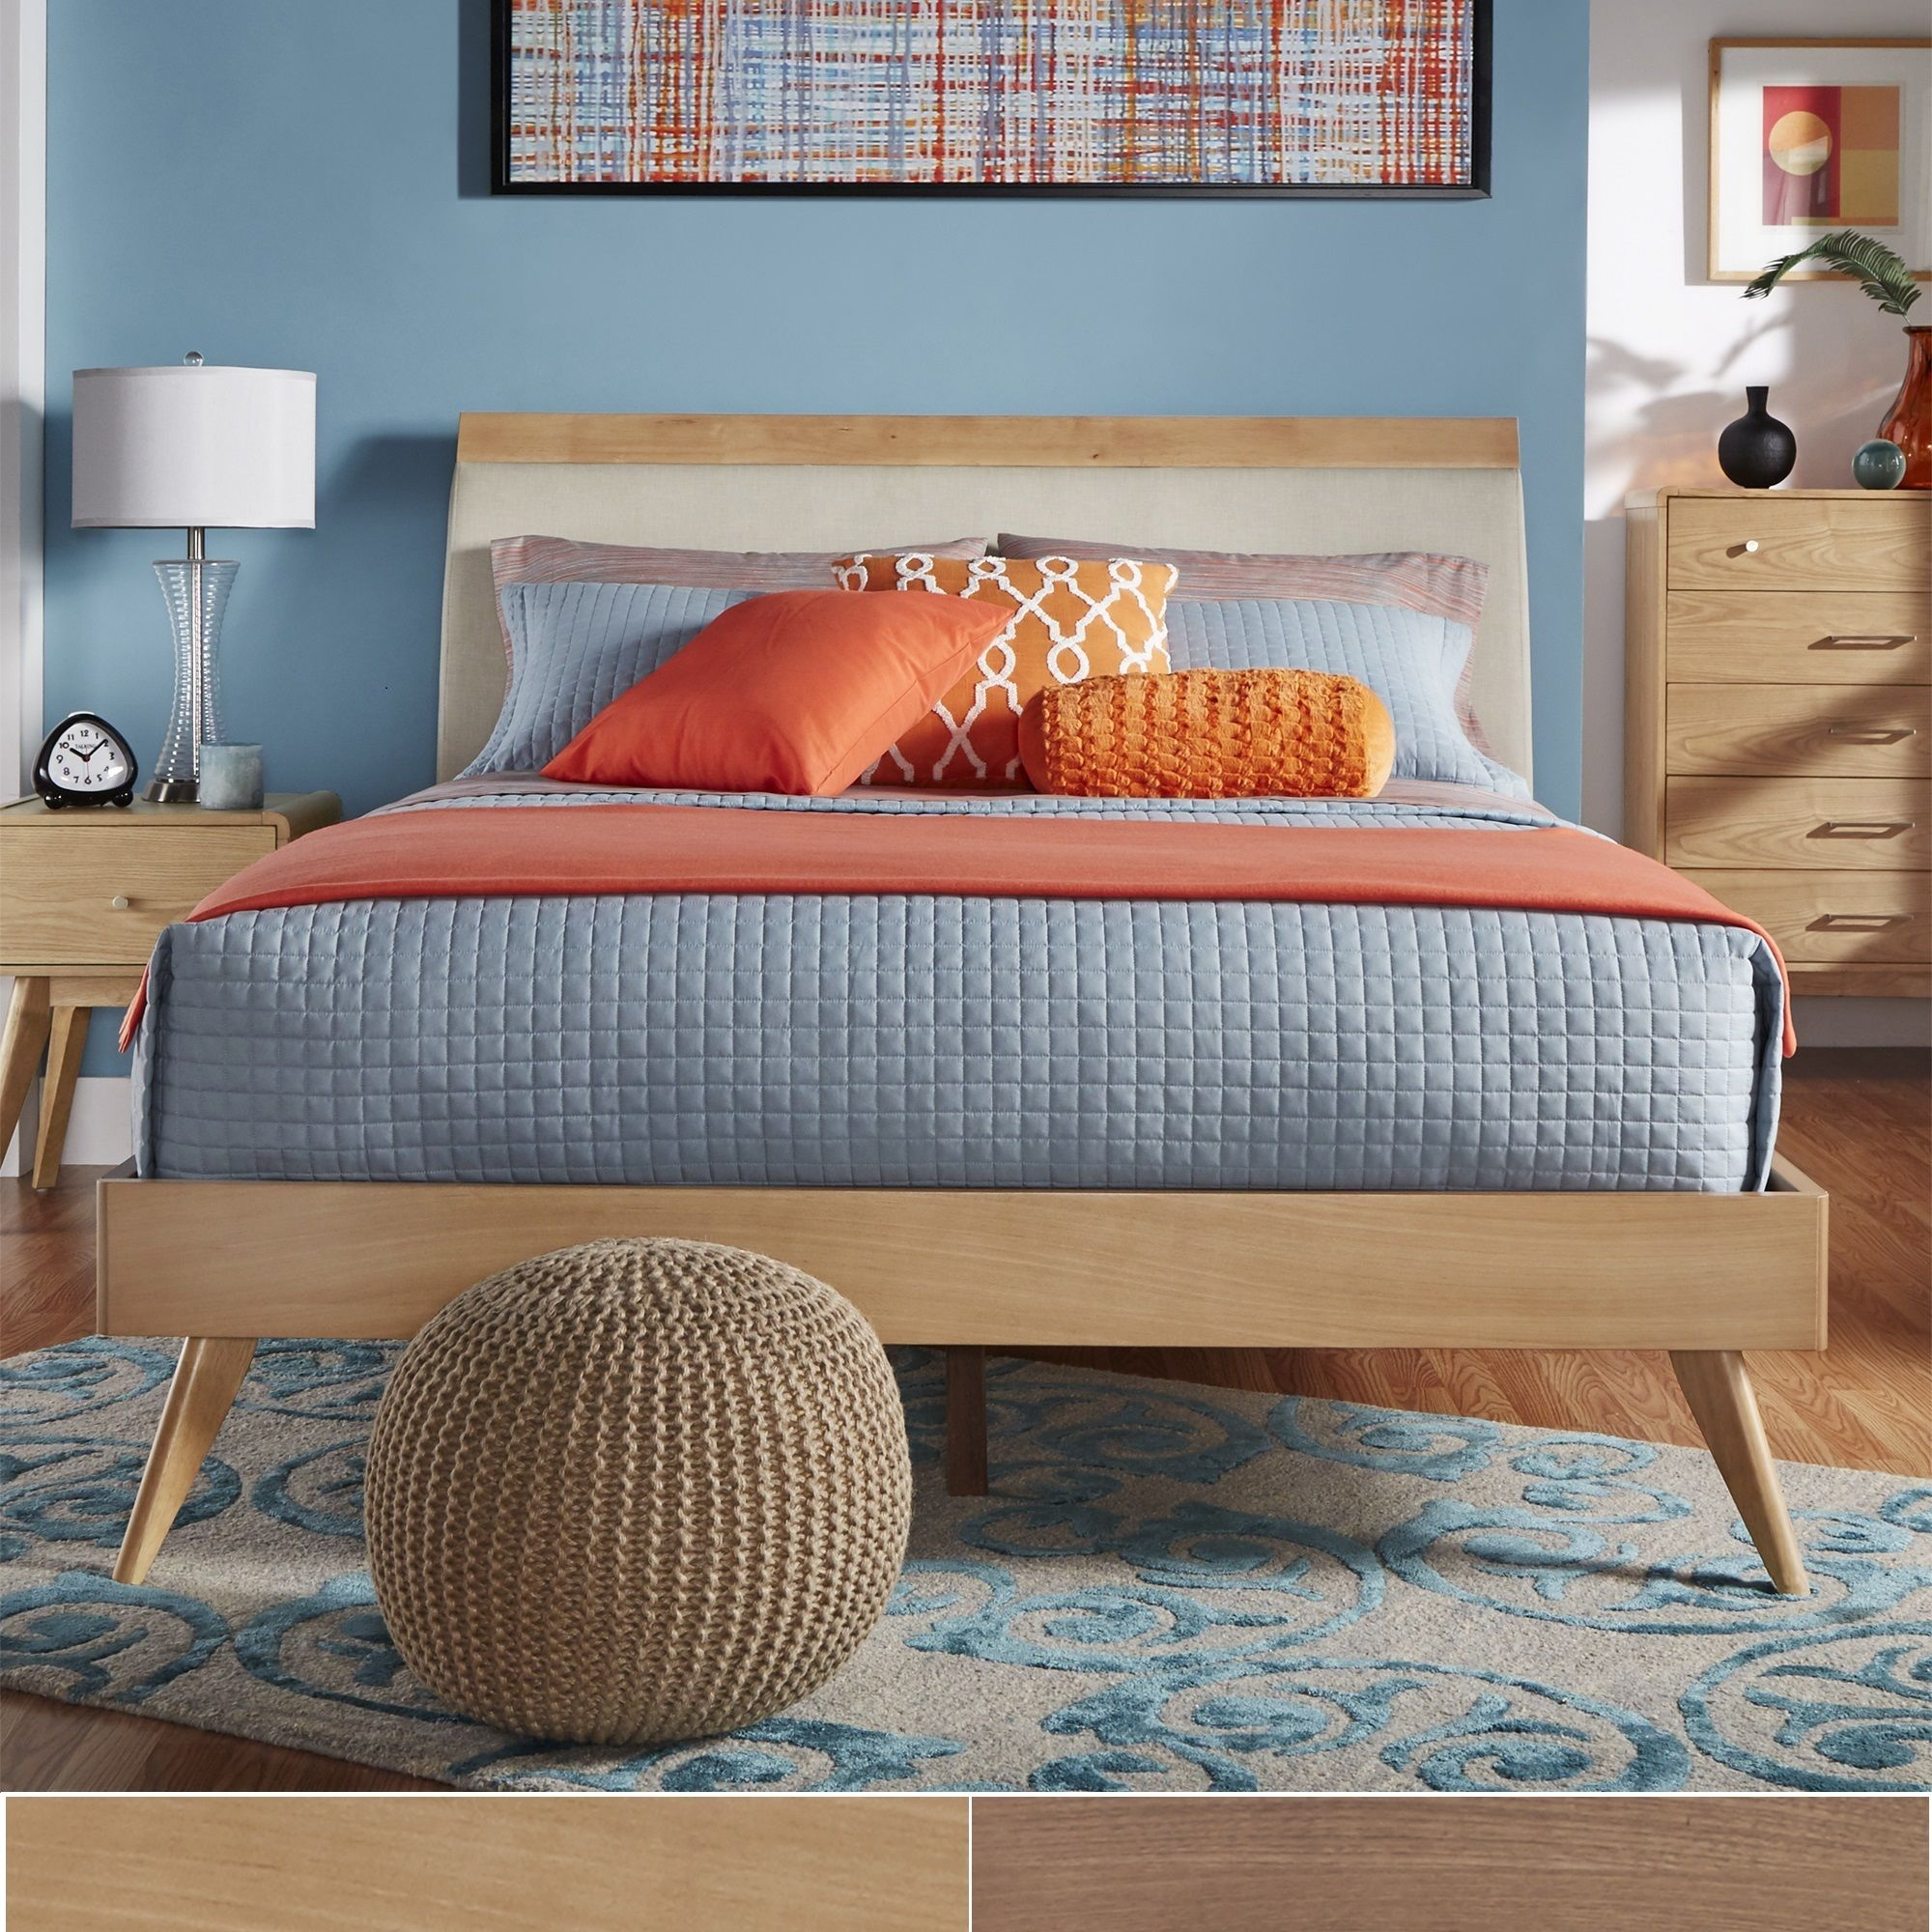 Simply crafted with elegant style, this mid-century modern bed ...